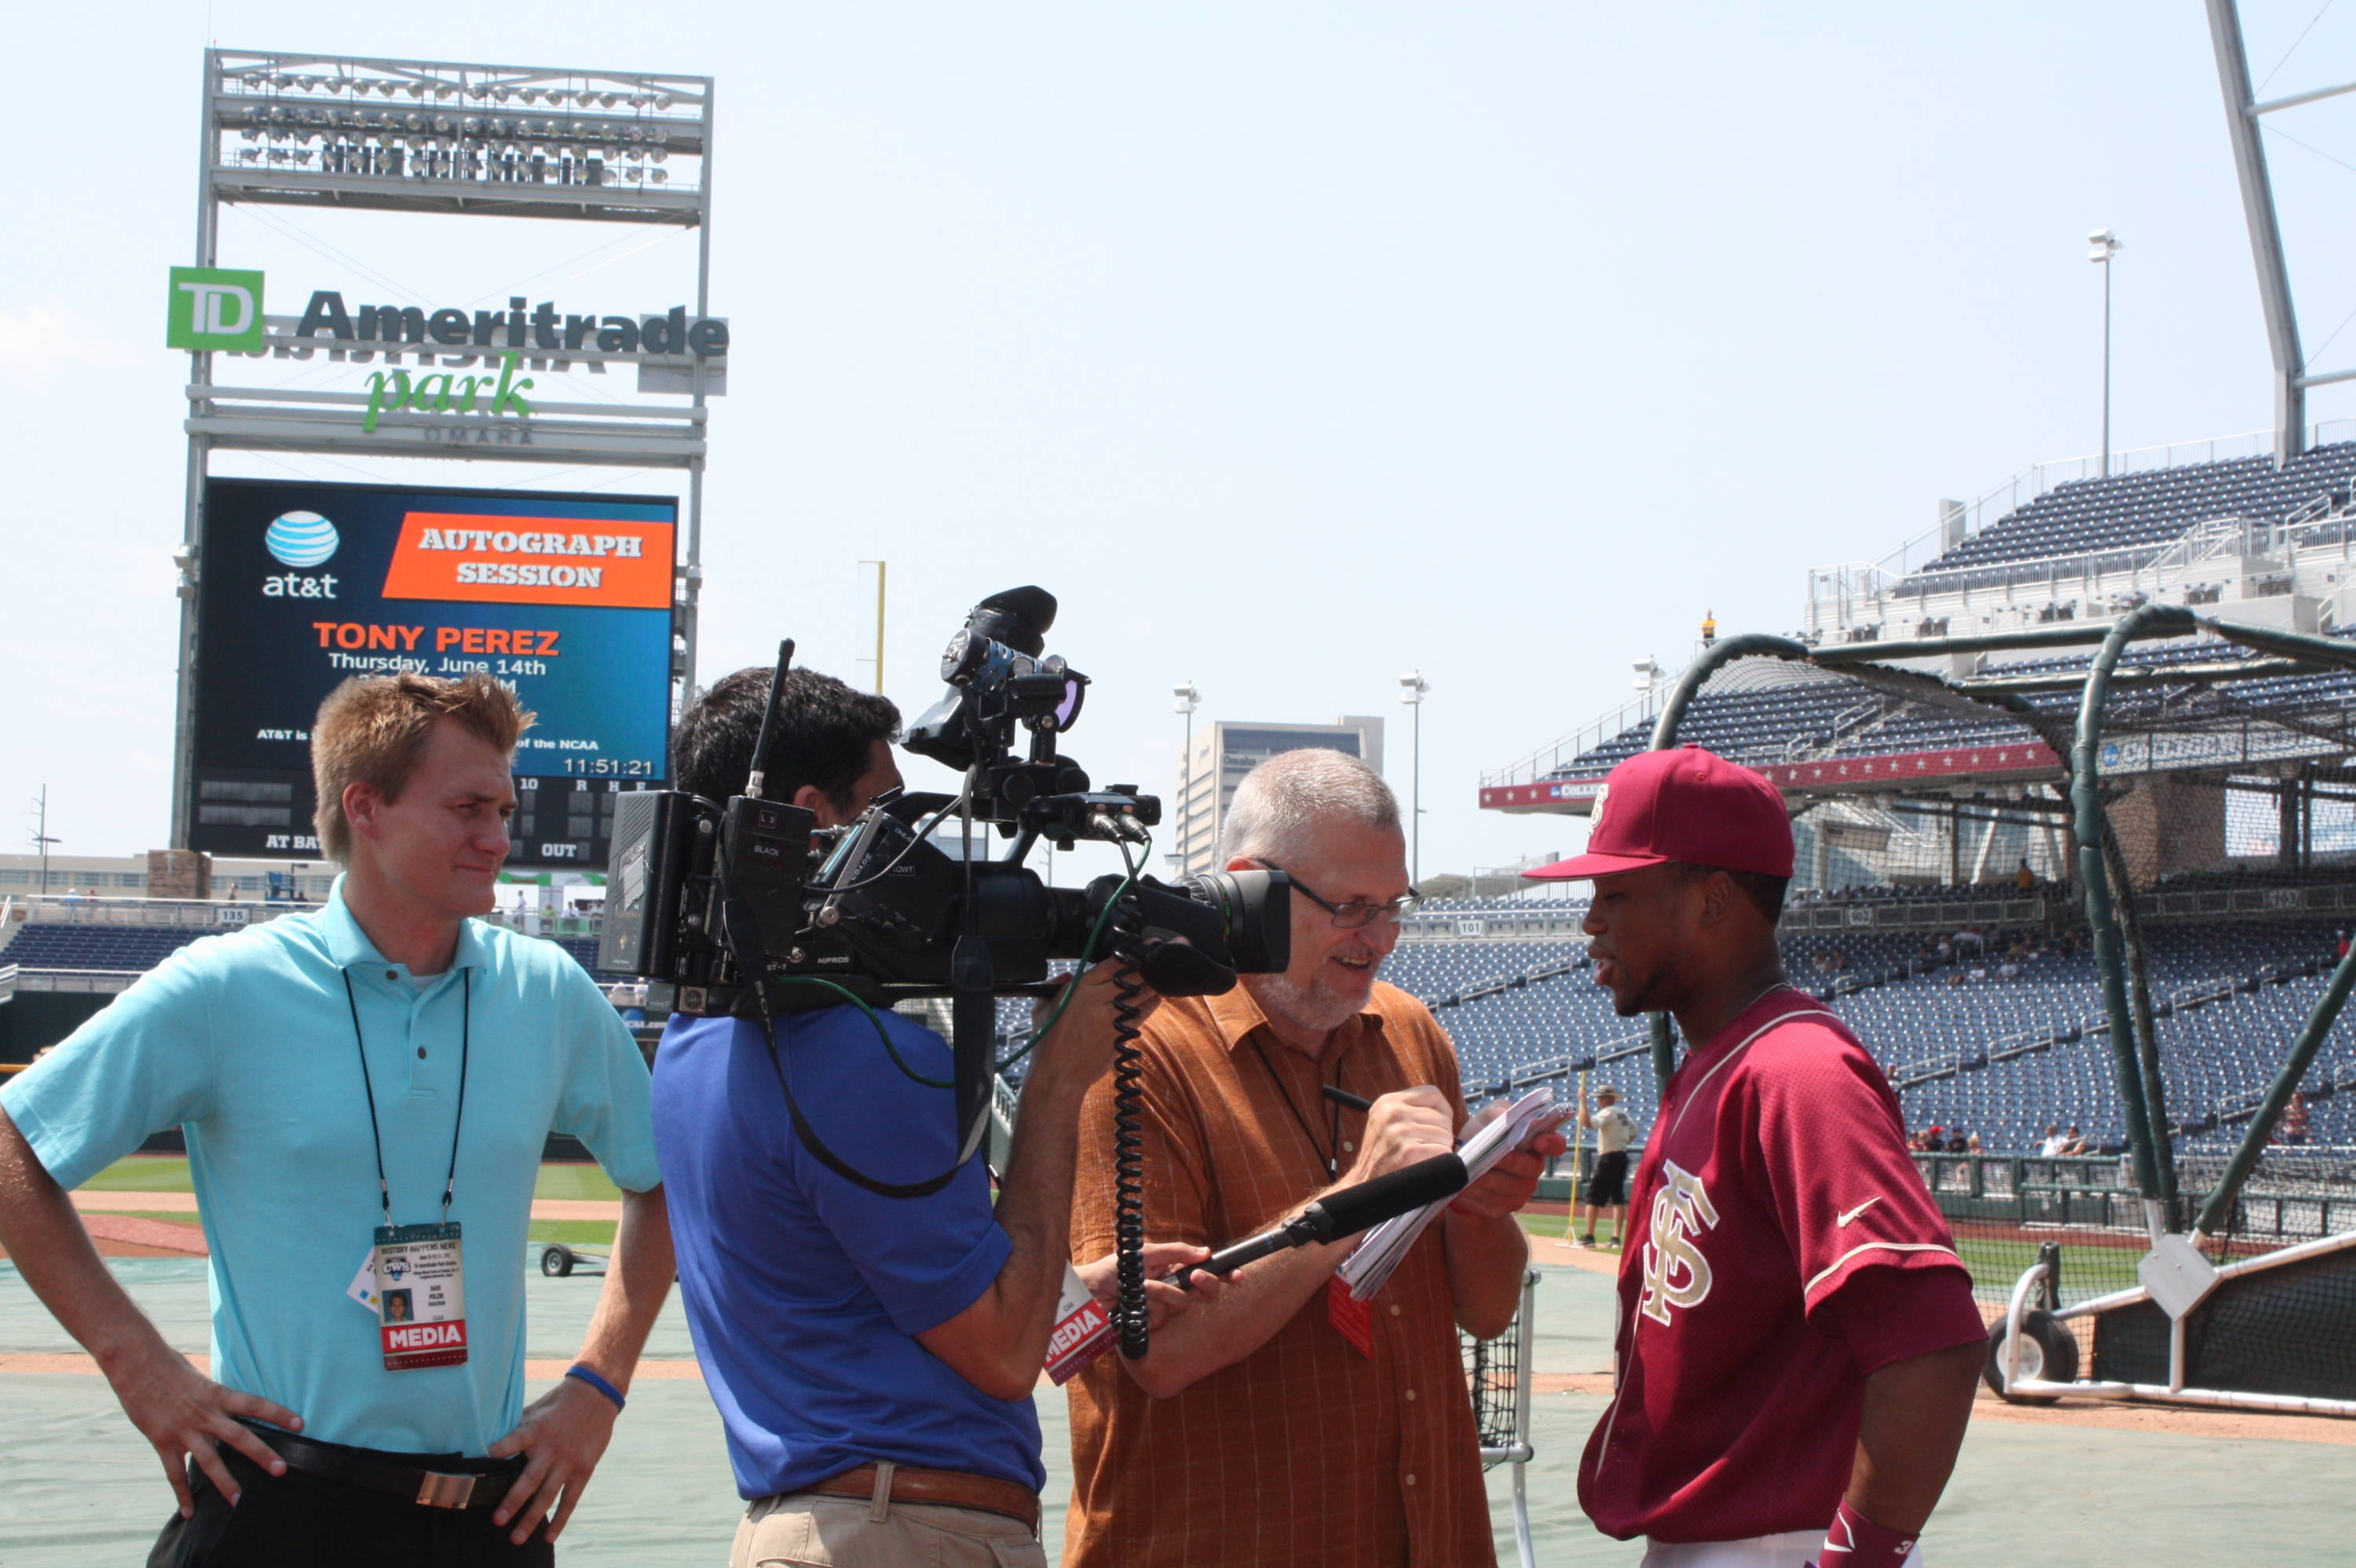 Sherman Johnson speaks to the media following practice at TD Ameritrade Park